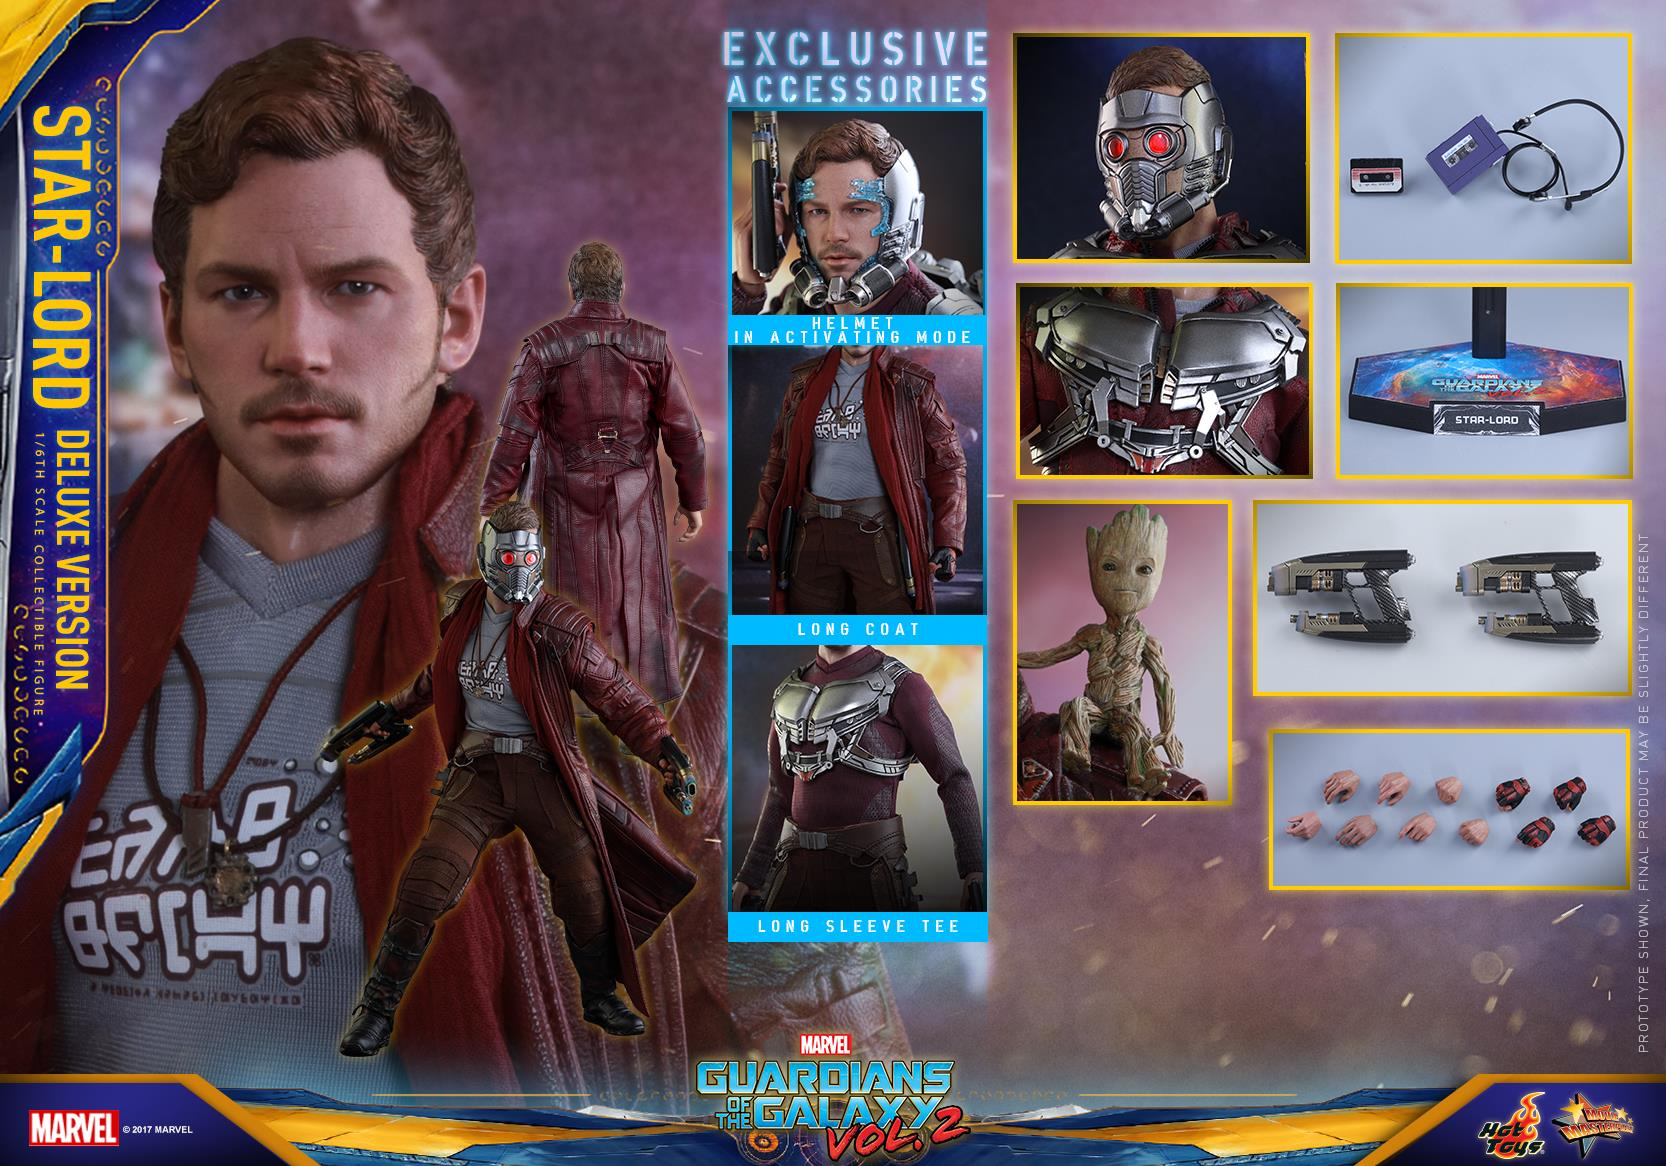 ht-starlord18